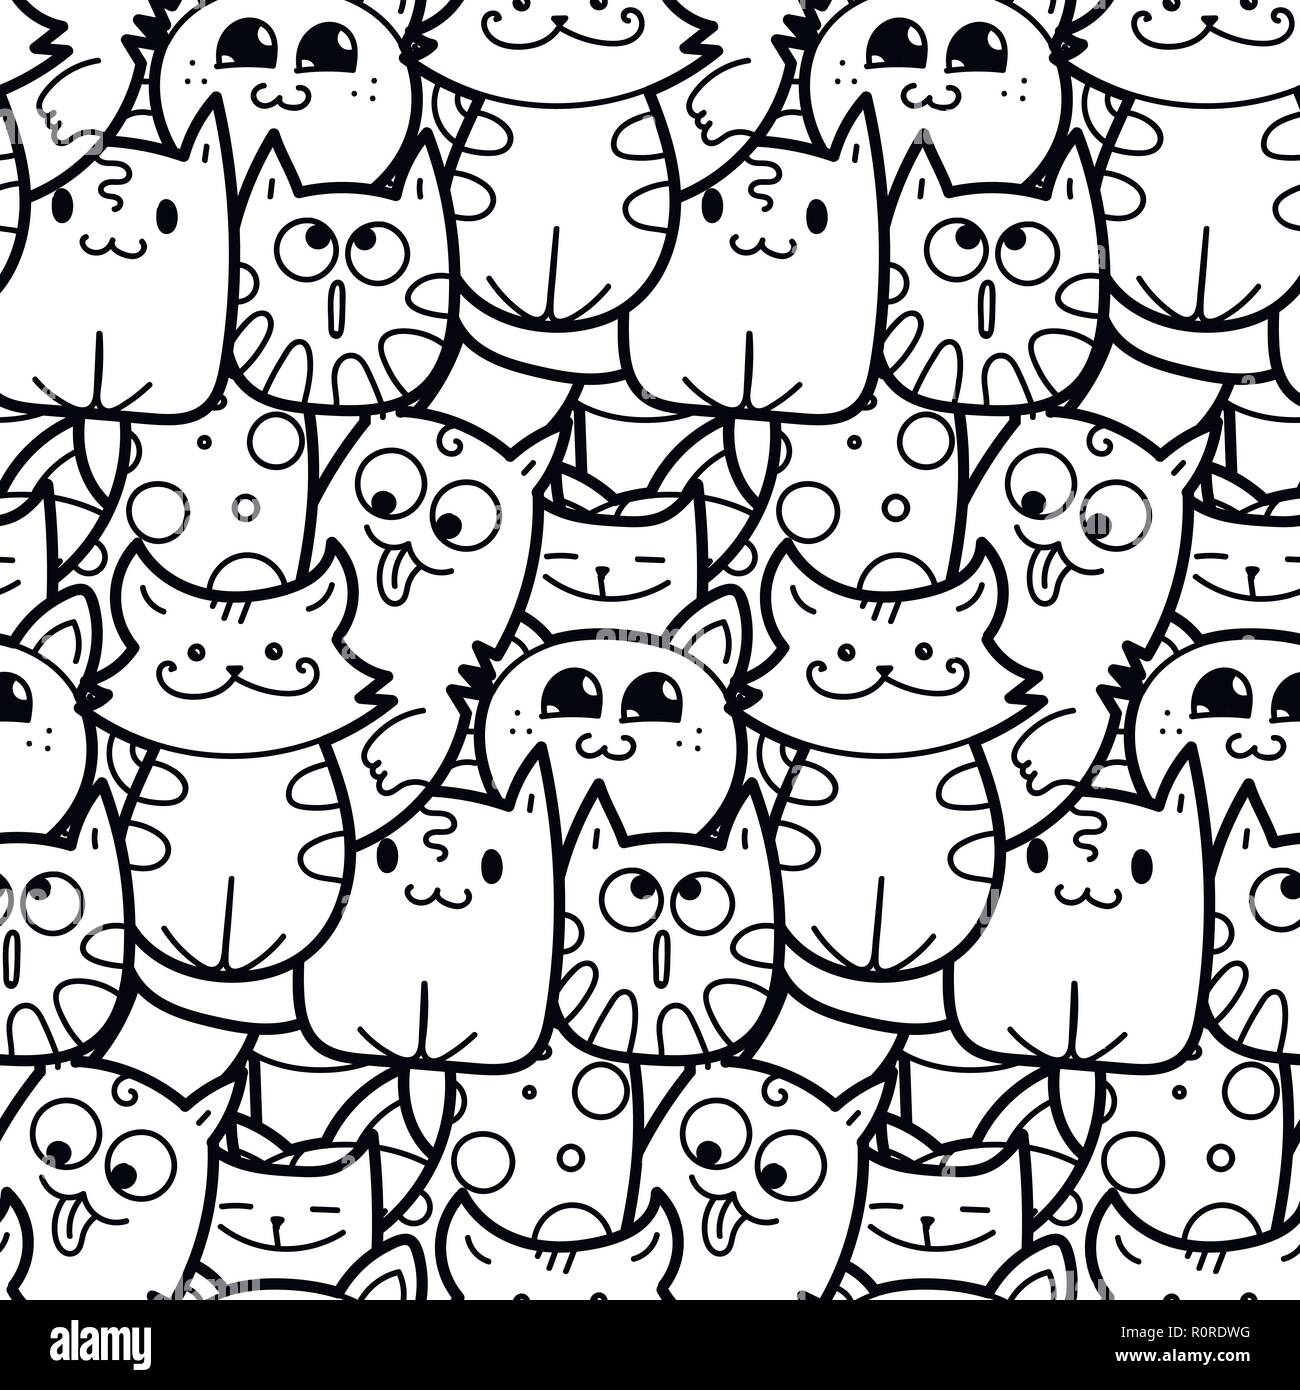 Funny doodle cats and kittens seamless pattern for prints ...